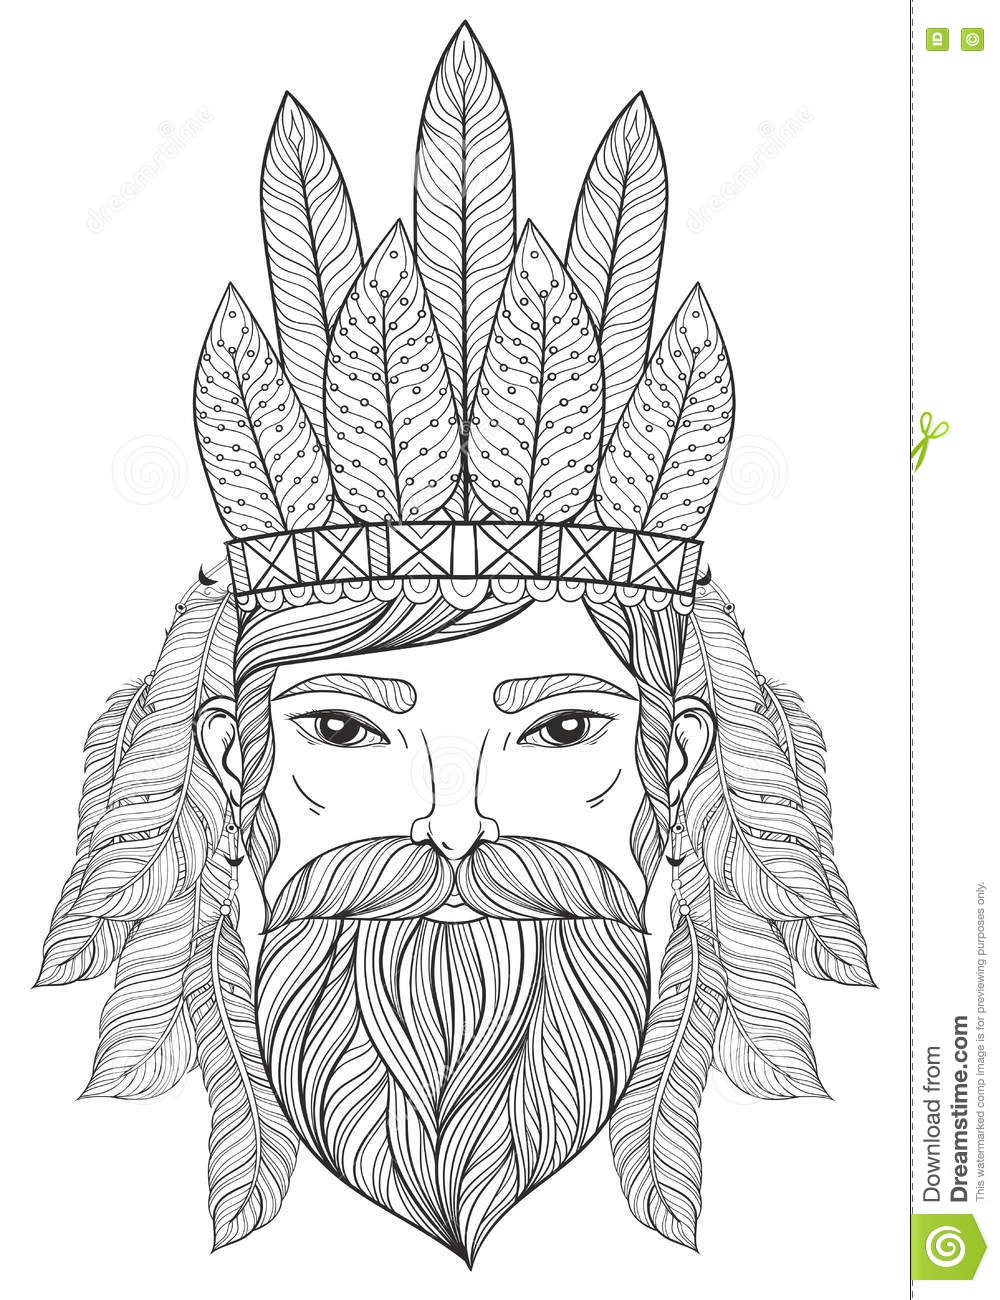 Vector zentangle portrait of man with mustache beard war bonnet with feathers for adult coloring pages tattoo art ethnic patterned t shirt print